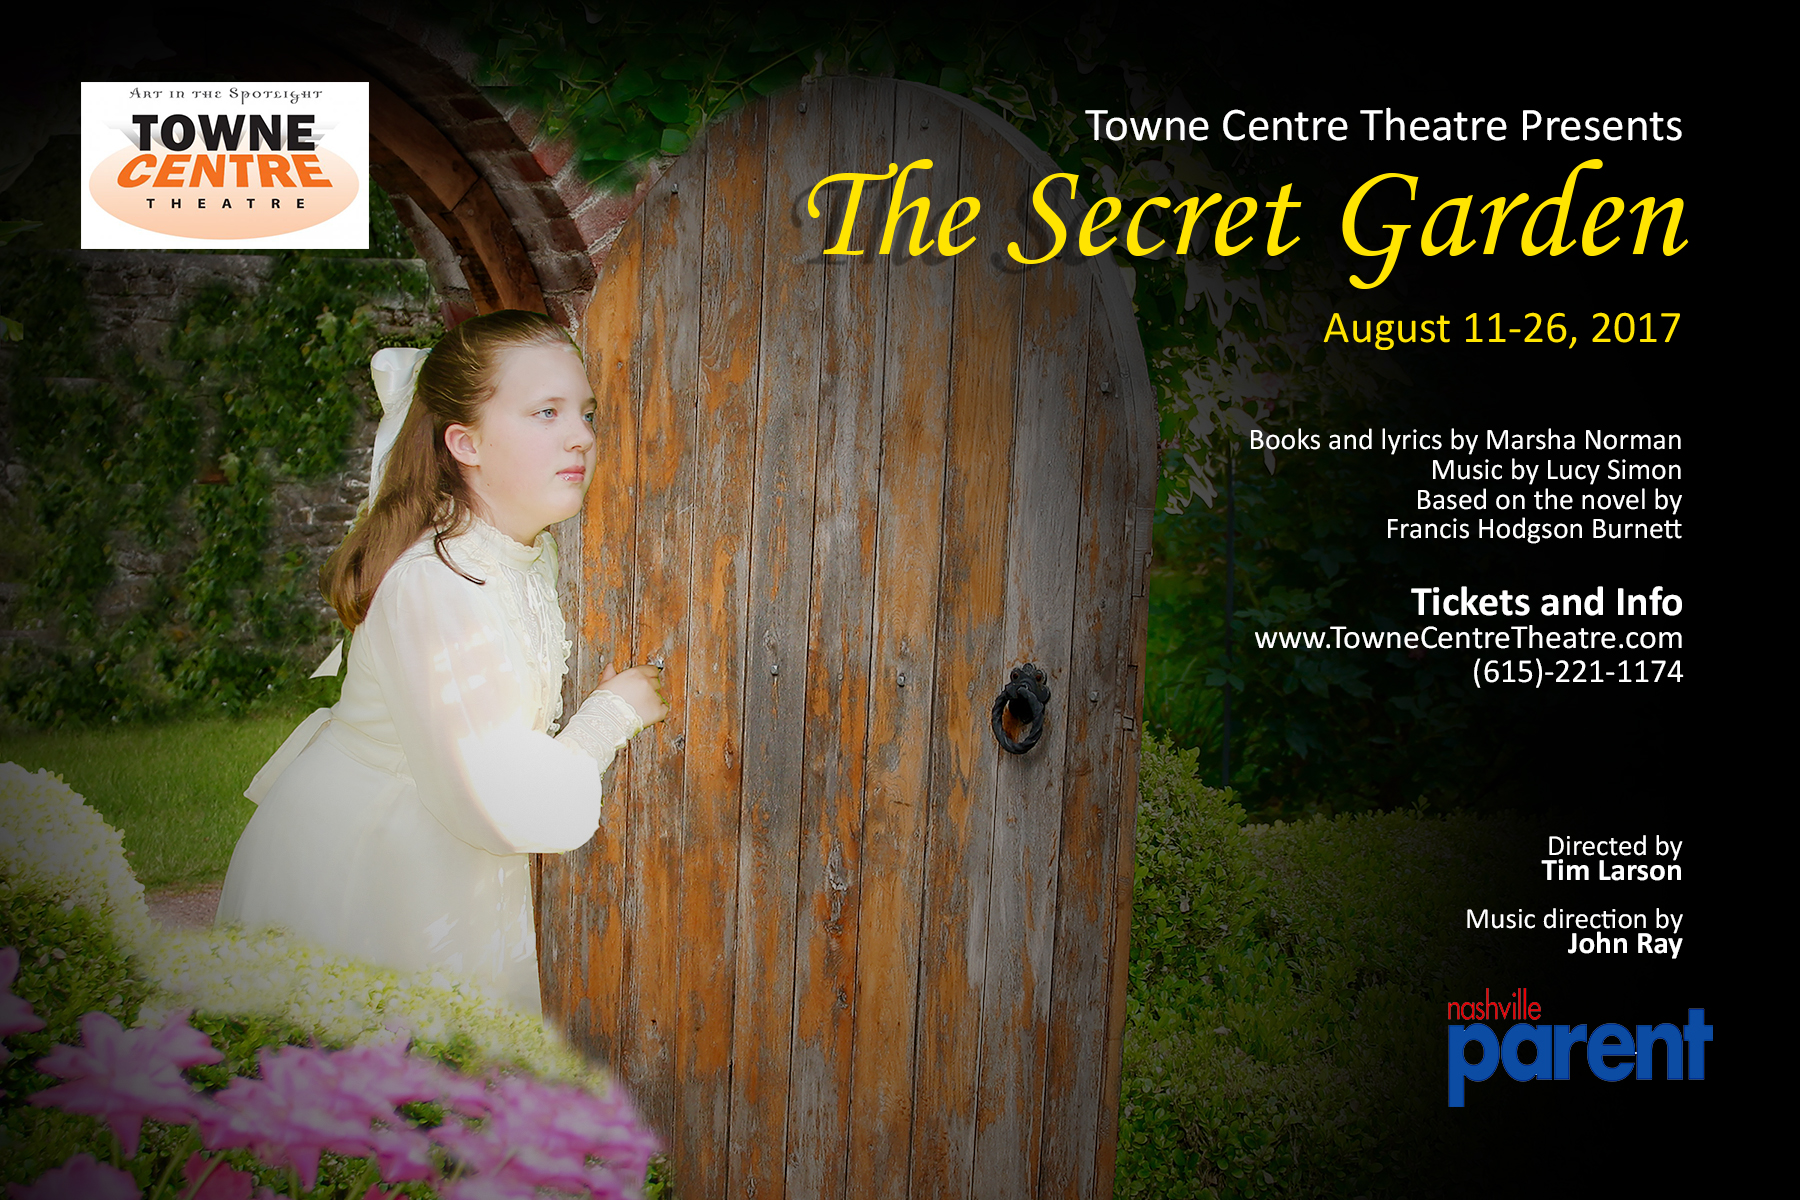 The Secret Garden presented by Towne Centre Theatre ...